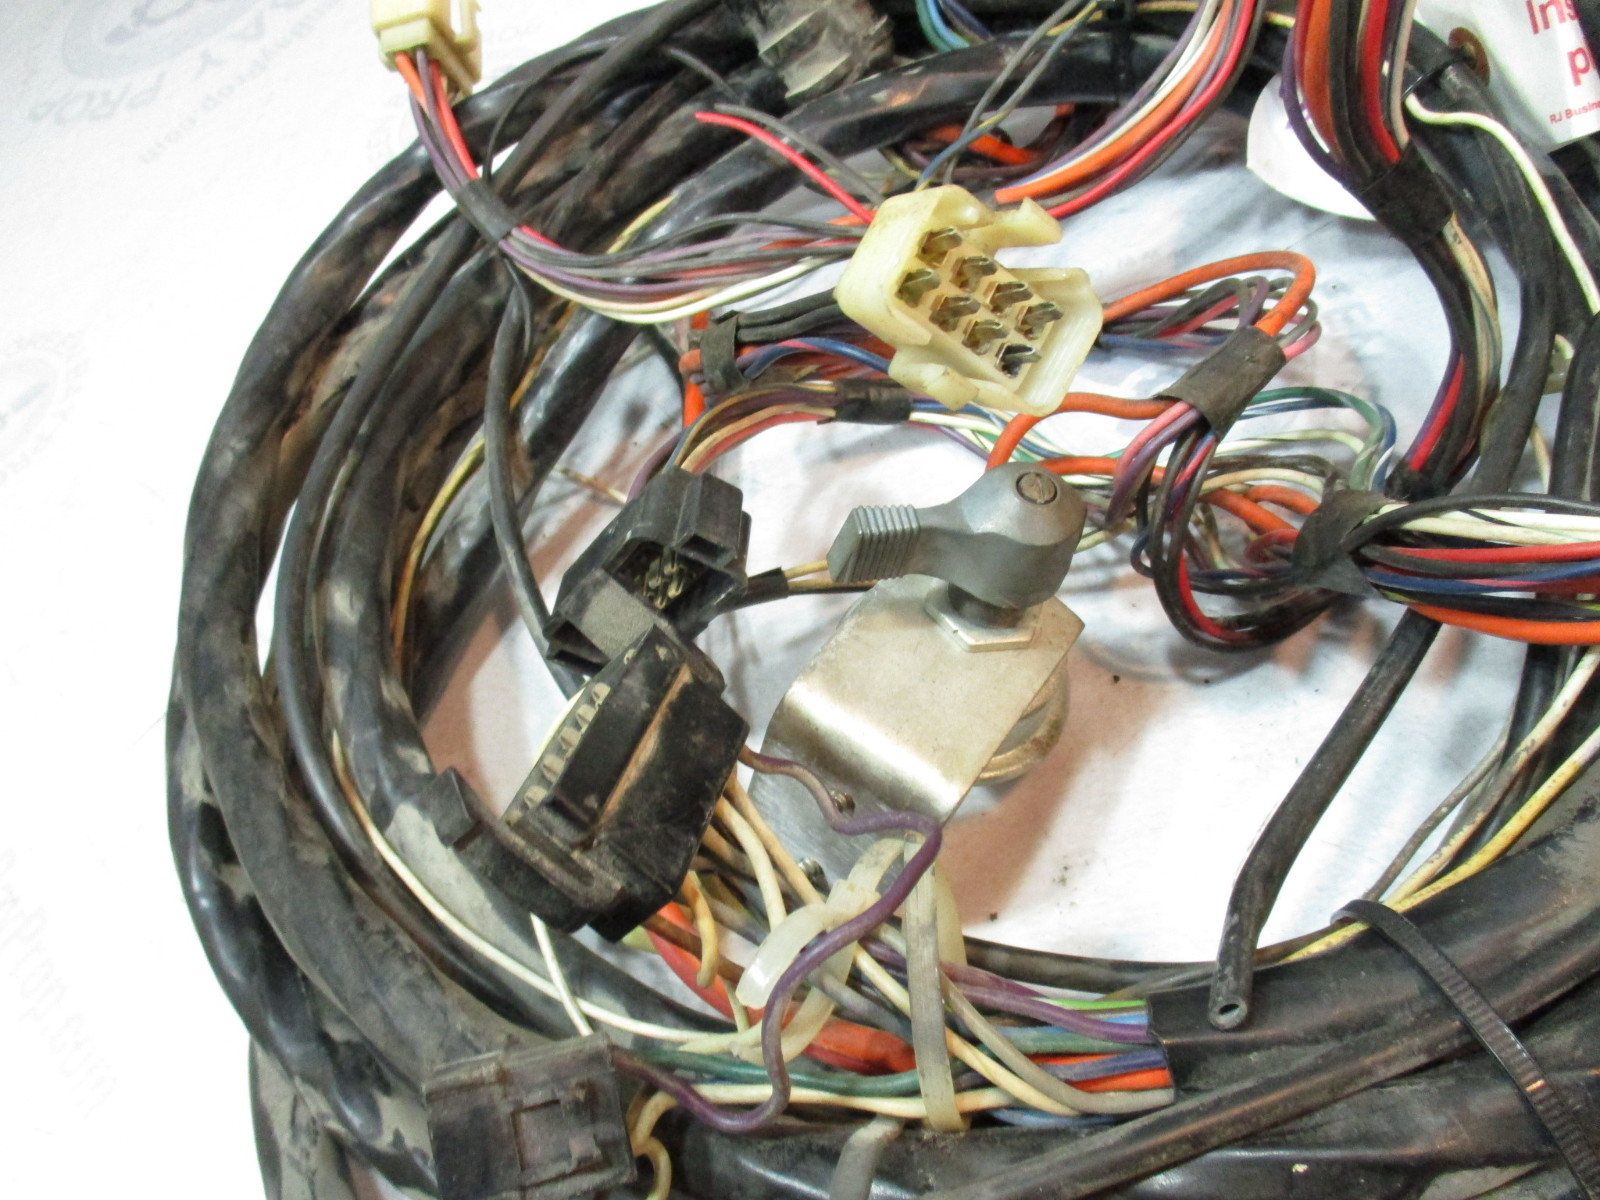 hight resolution of  omc stringer v8 1971 engine to dash 22 boat wire harness